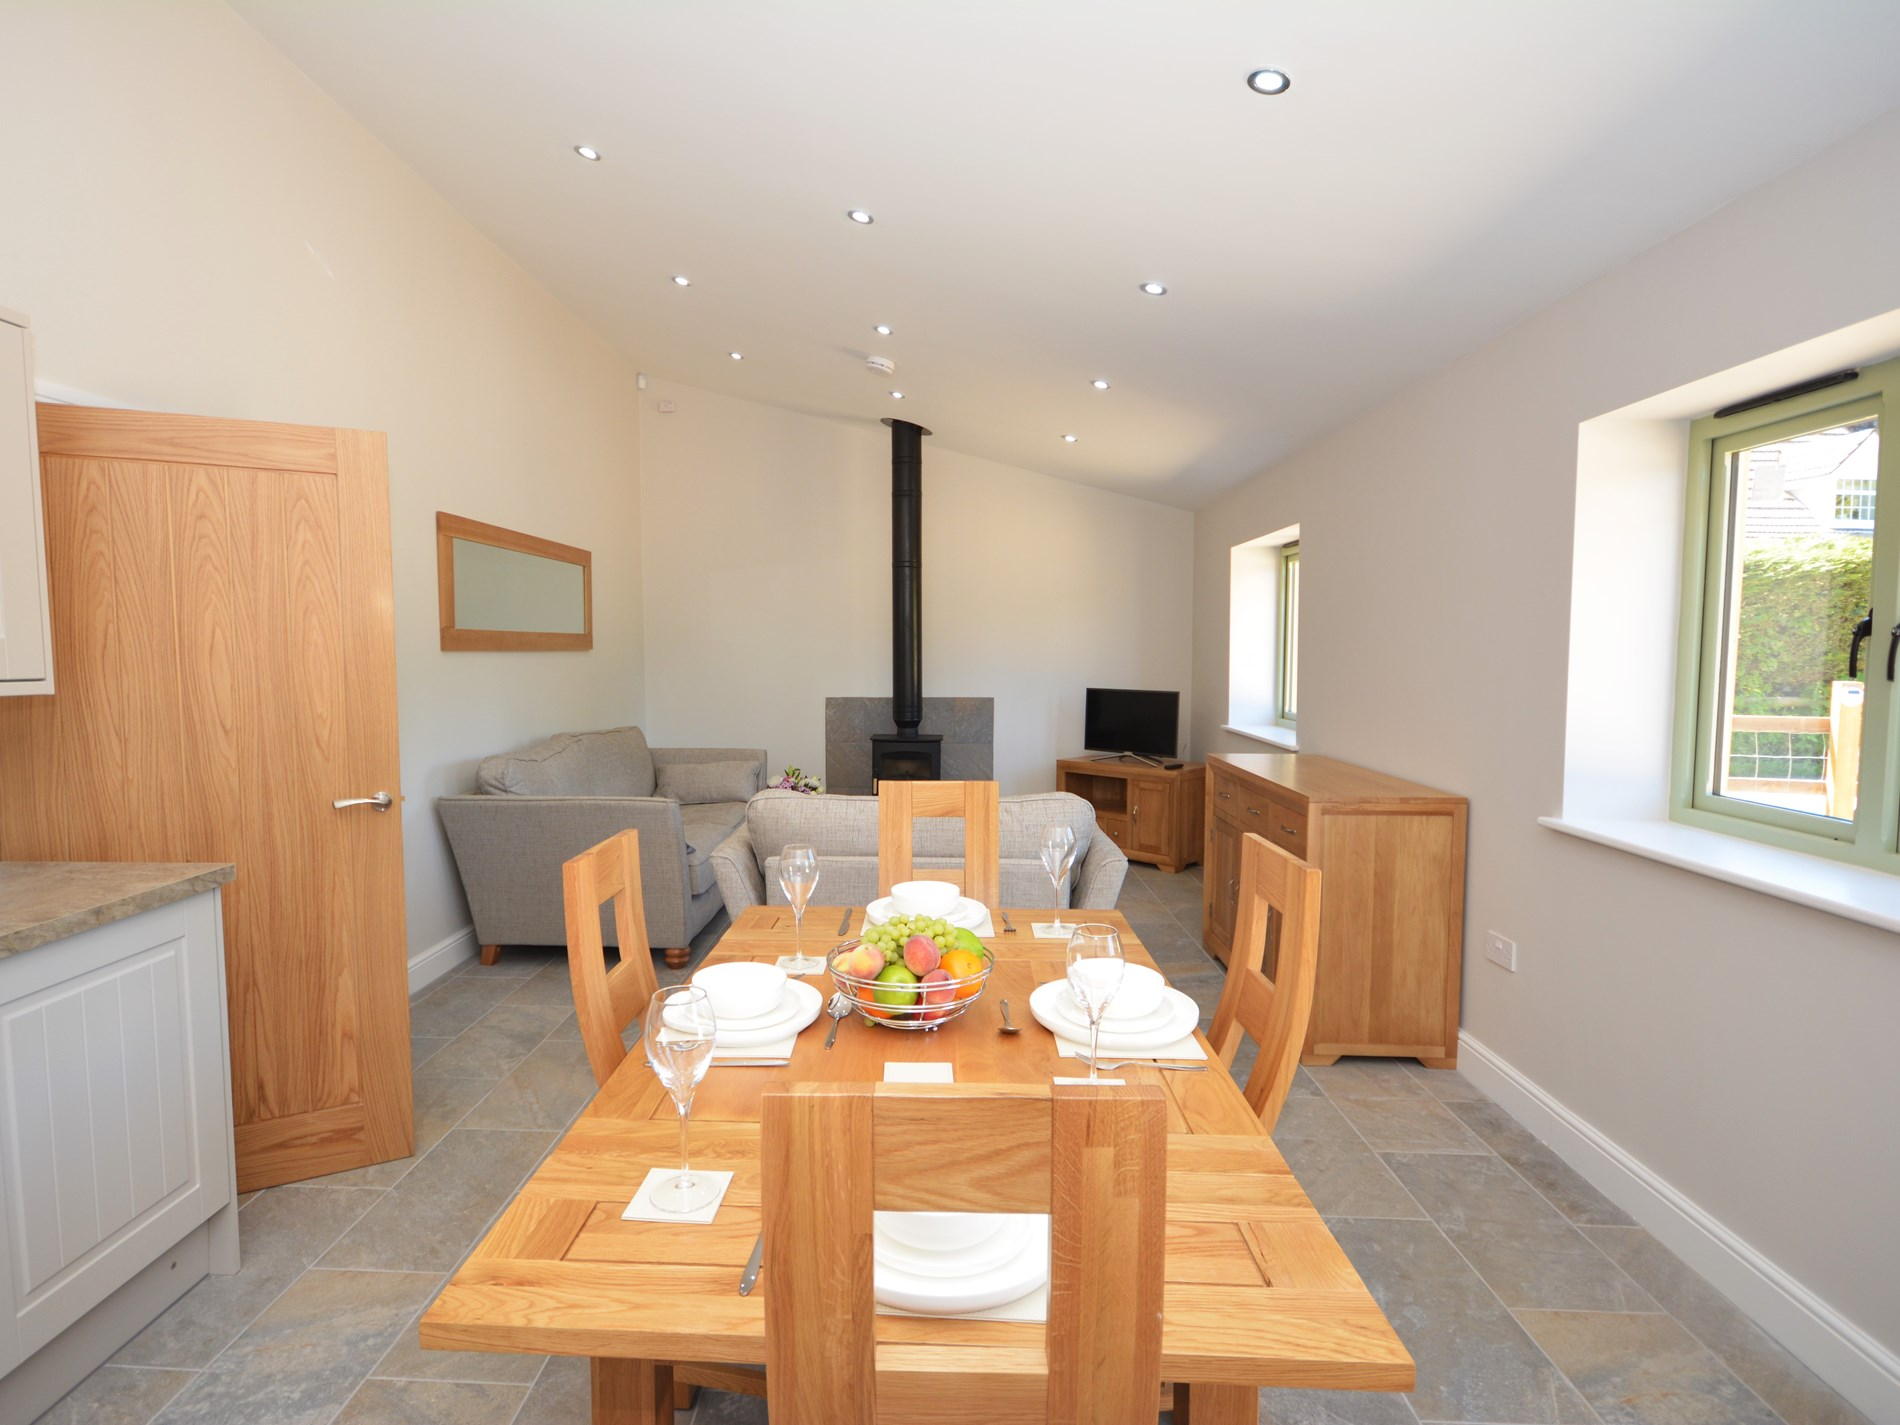 2 Bedroom Cottage in Pontypool, Pembrokeshire and the South